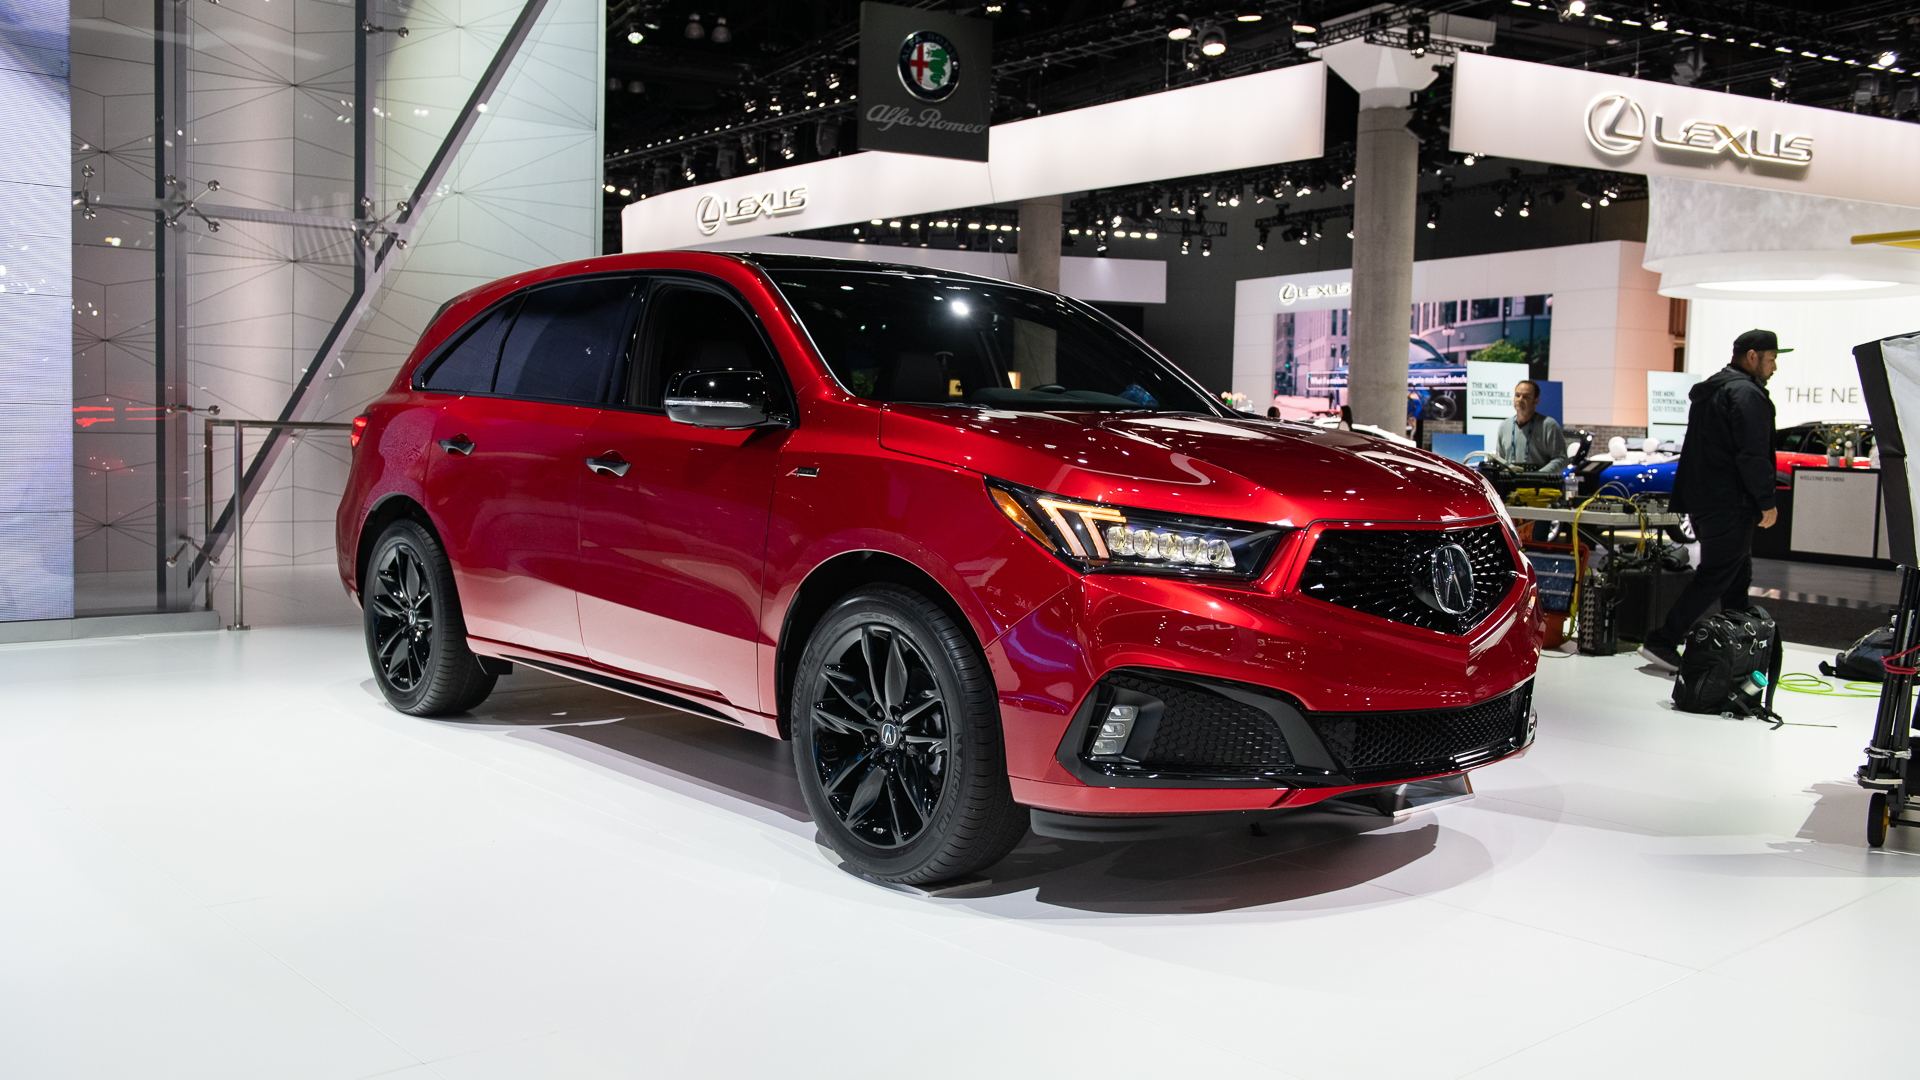 Latest Project 2019 Acura Mdx Aspec Certified Ex Courtesy Local Car Bluetooth Navigation Warranty Till November 2022 Photos Pre Owned 2015 Tech Pkg Awd New 2020 Sh With Technology Package For